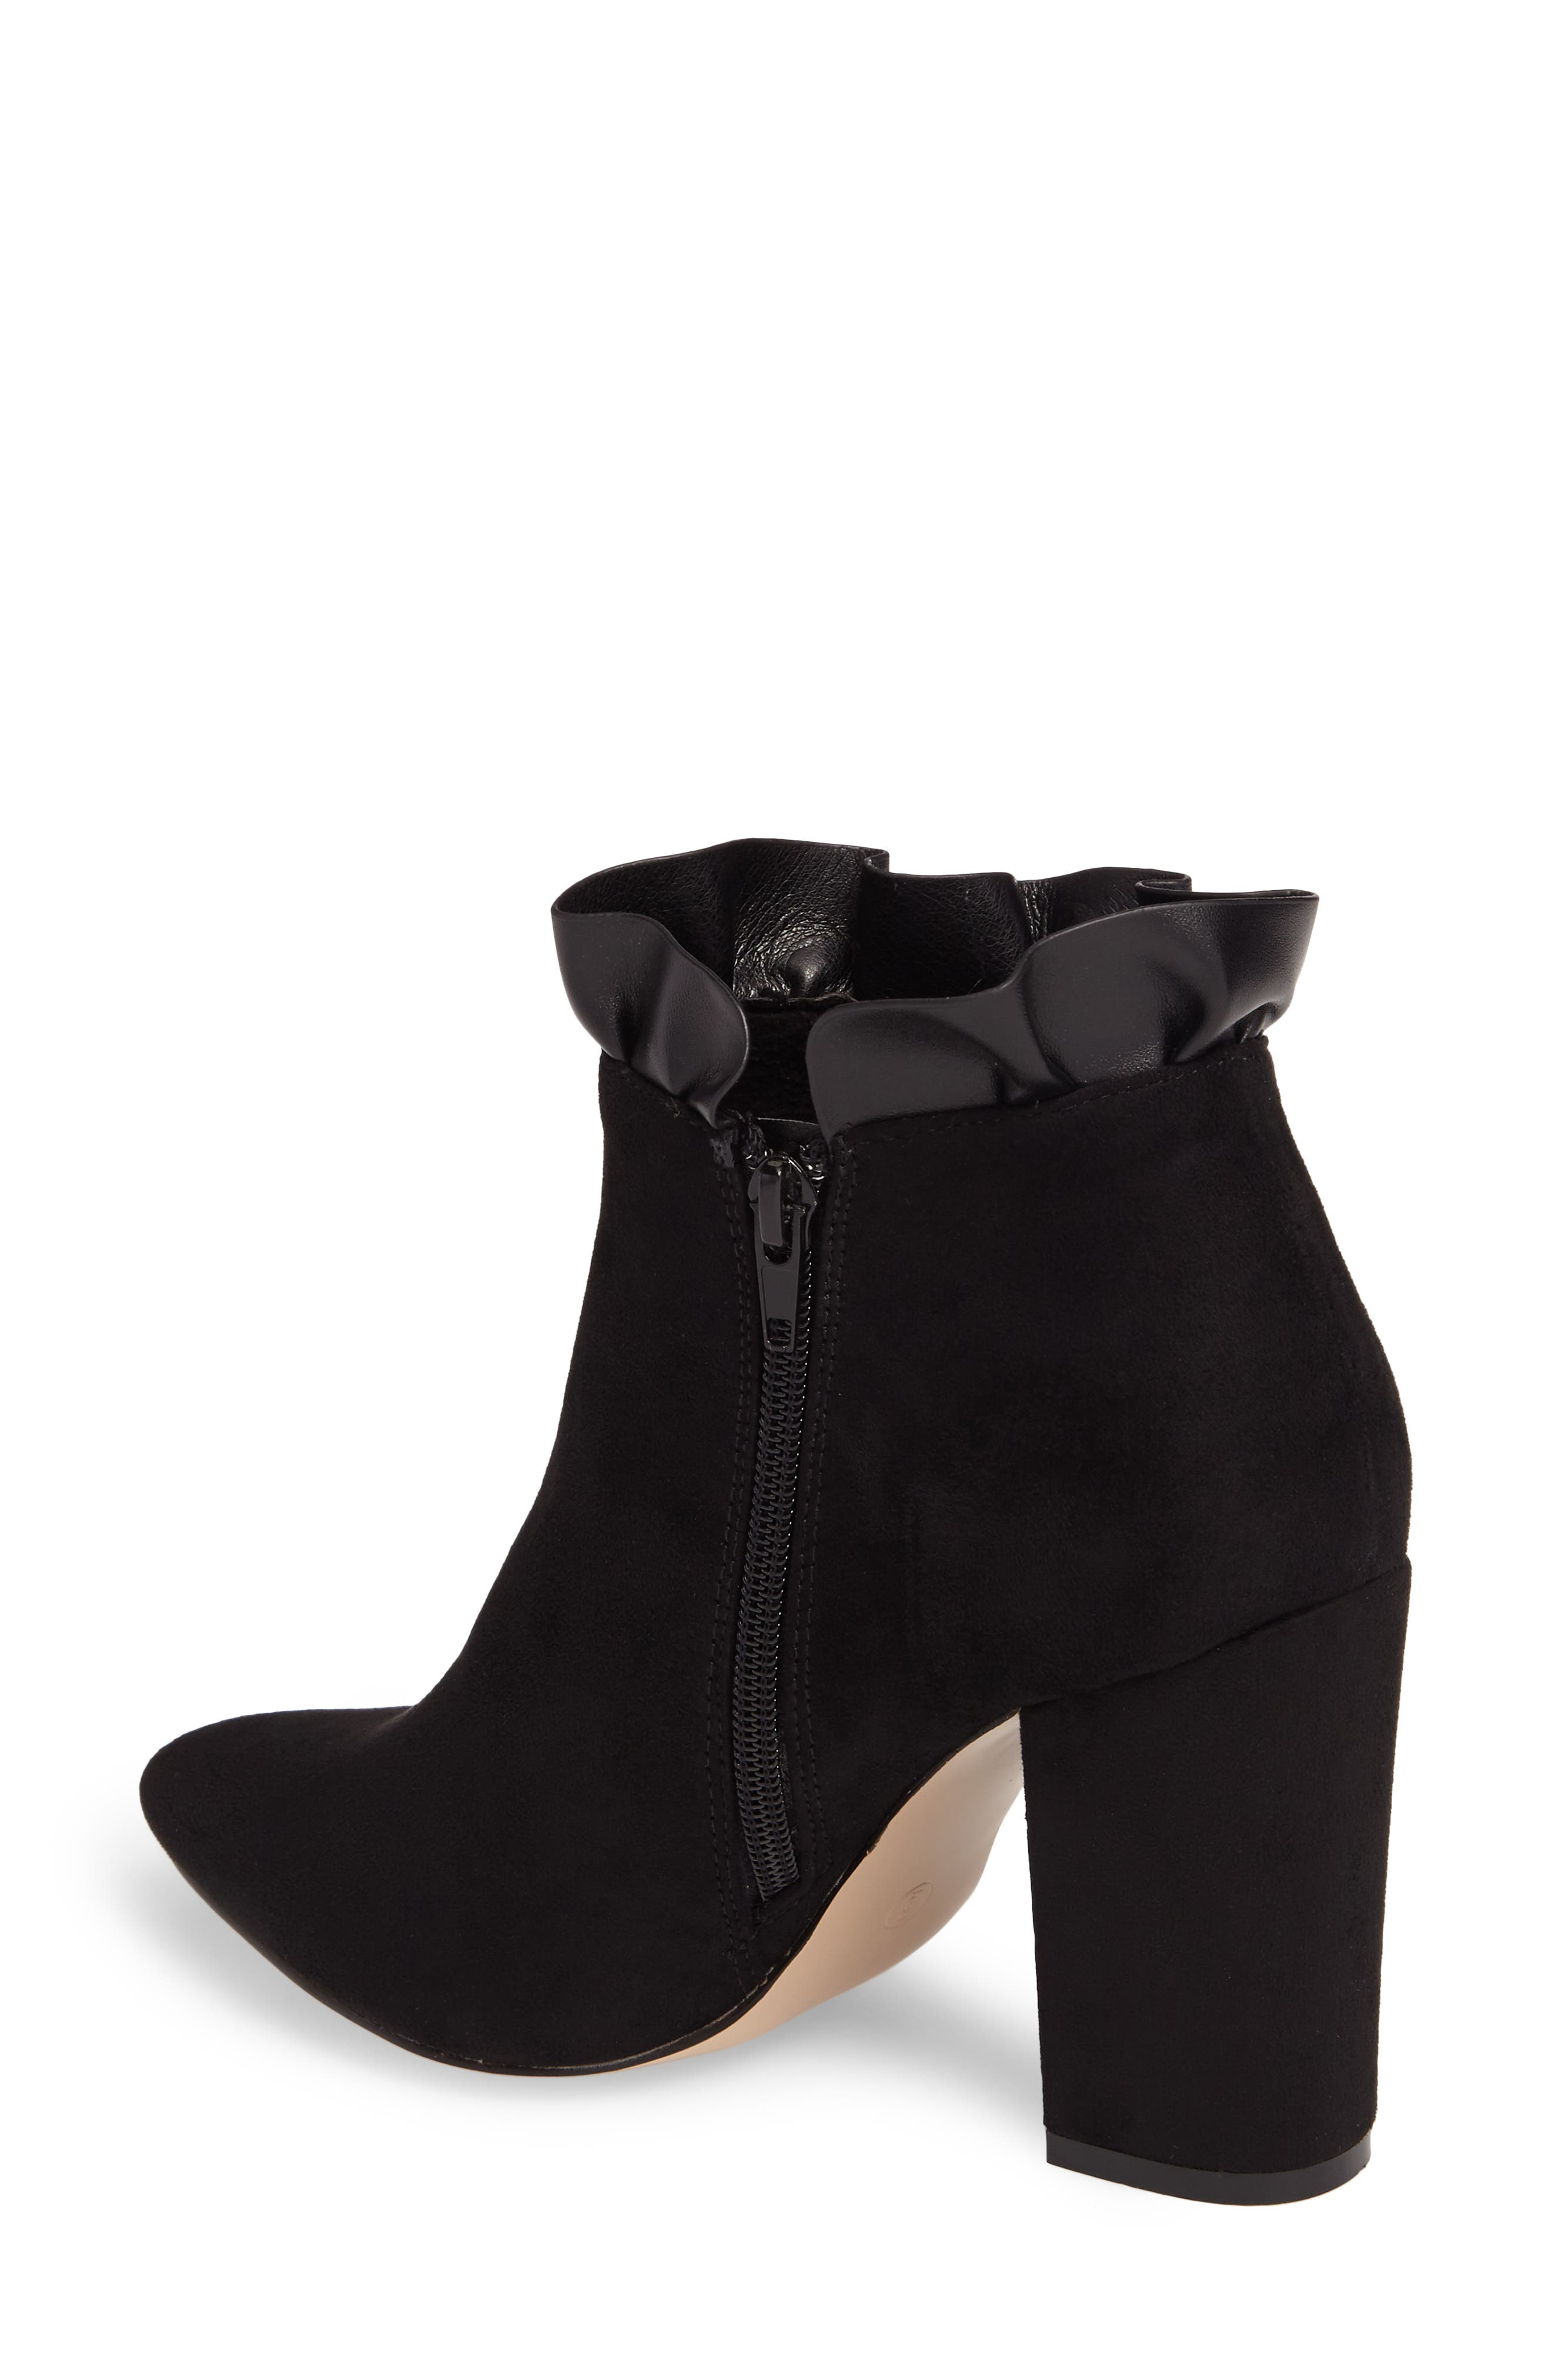 Katana Pointy Toe Bootie,                             Alternate thumbnail 4, color,